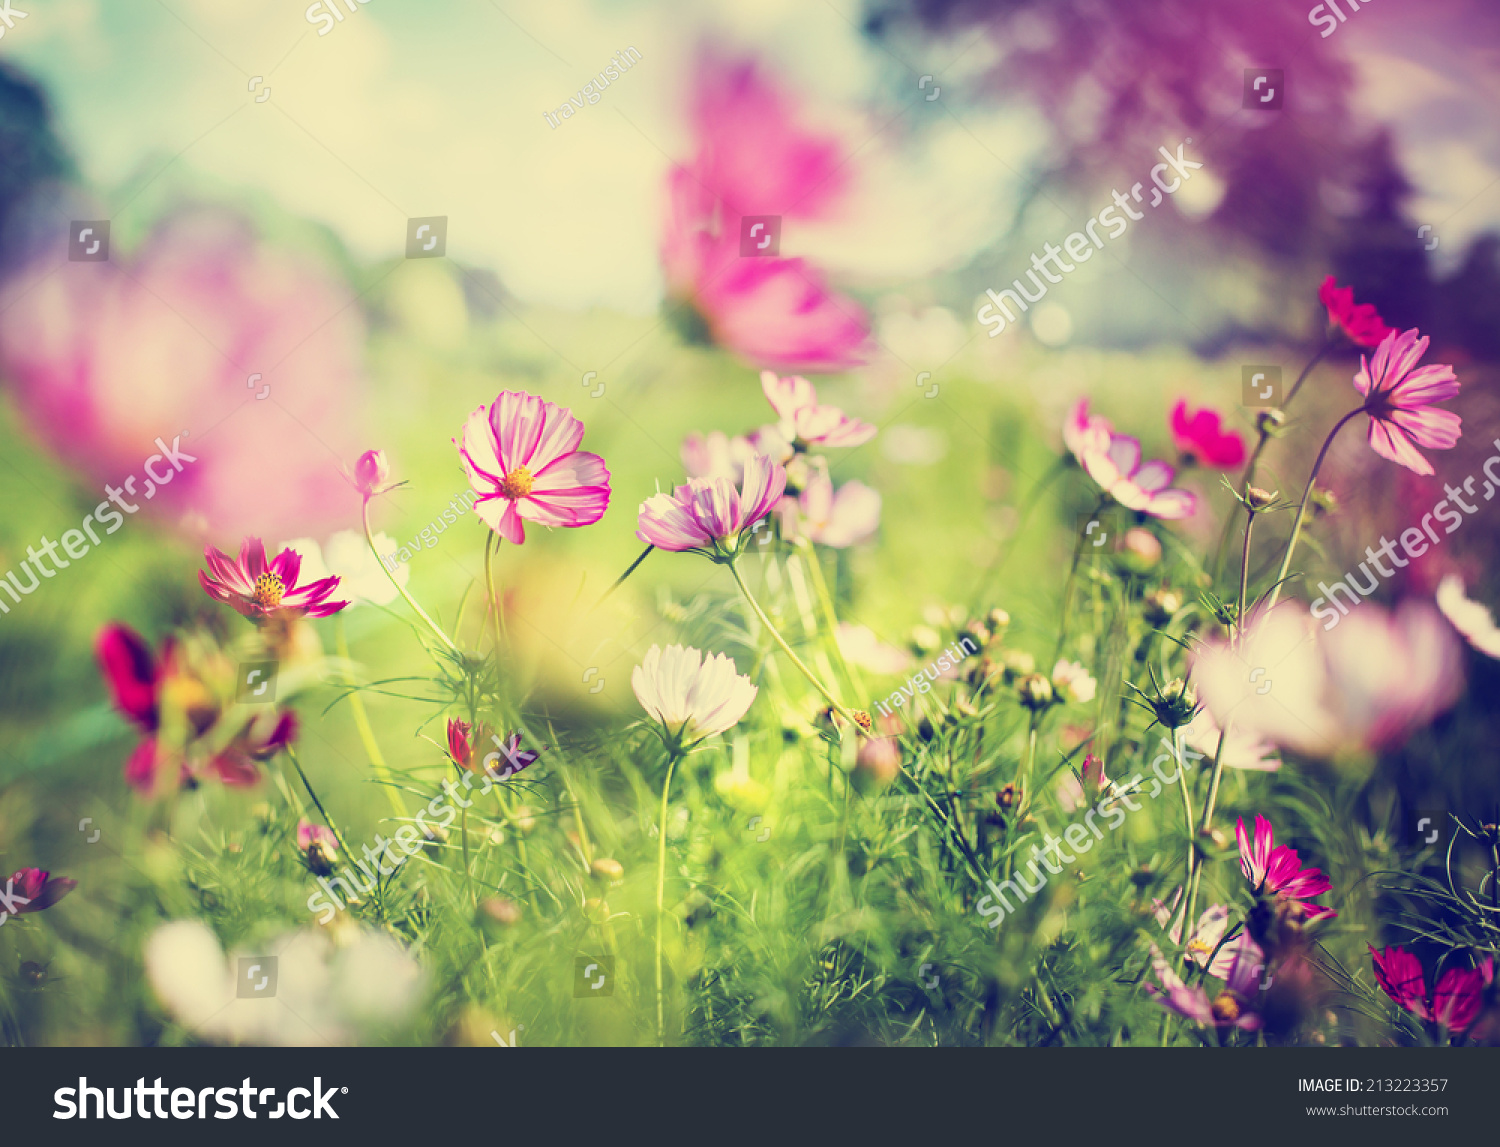 garden design with beautiful garden flowers stock photo shutterstock with garden patio from shutterstock - Garden Flowers